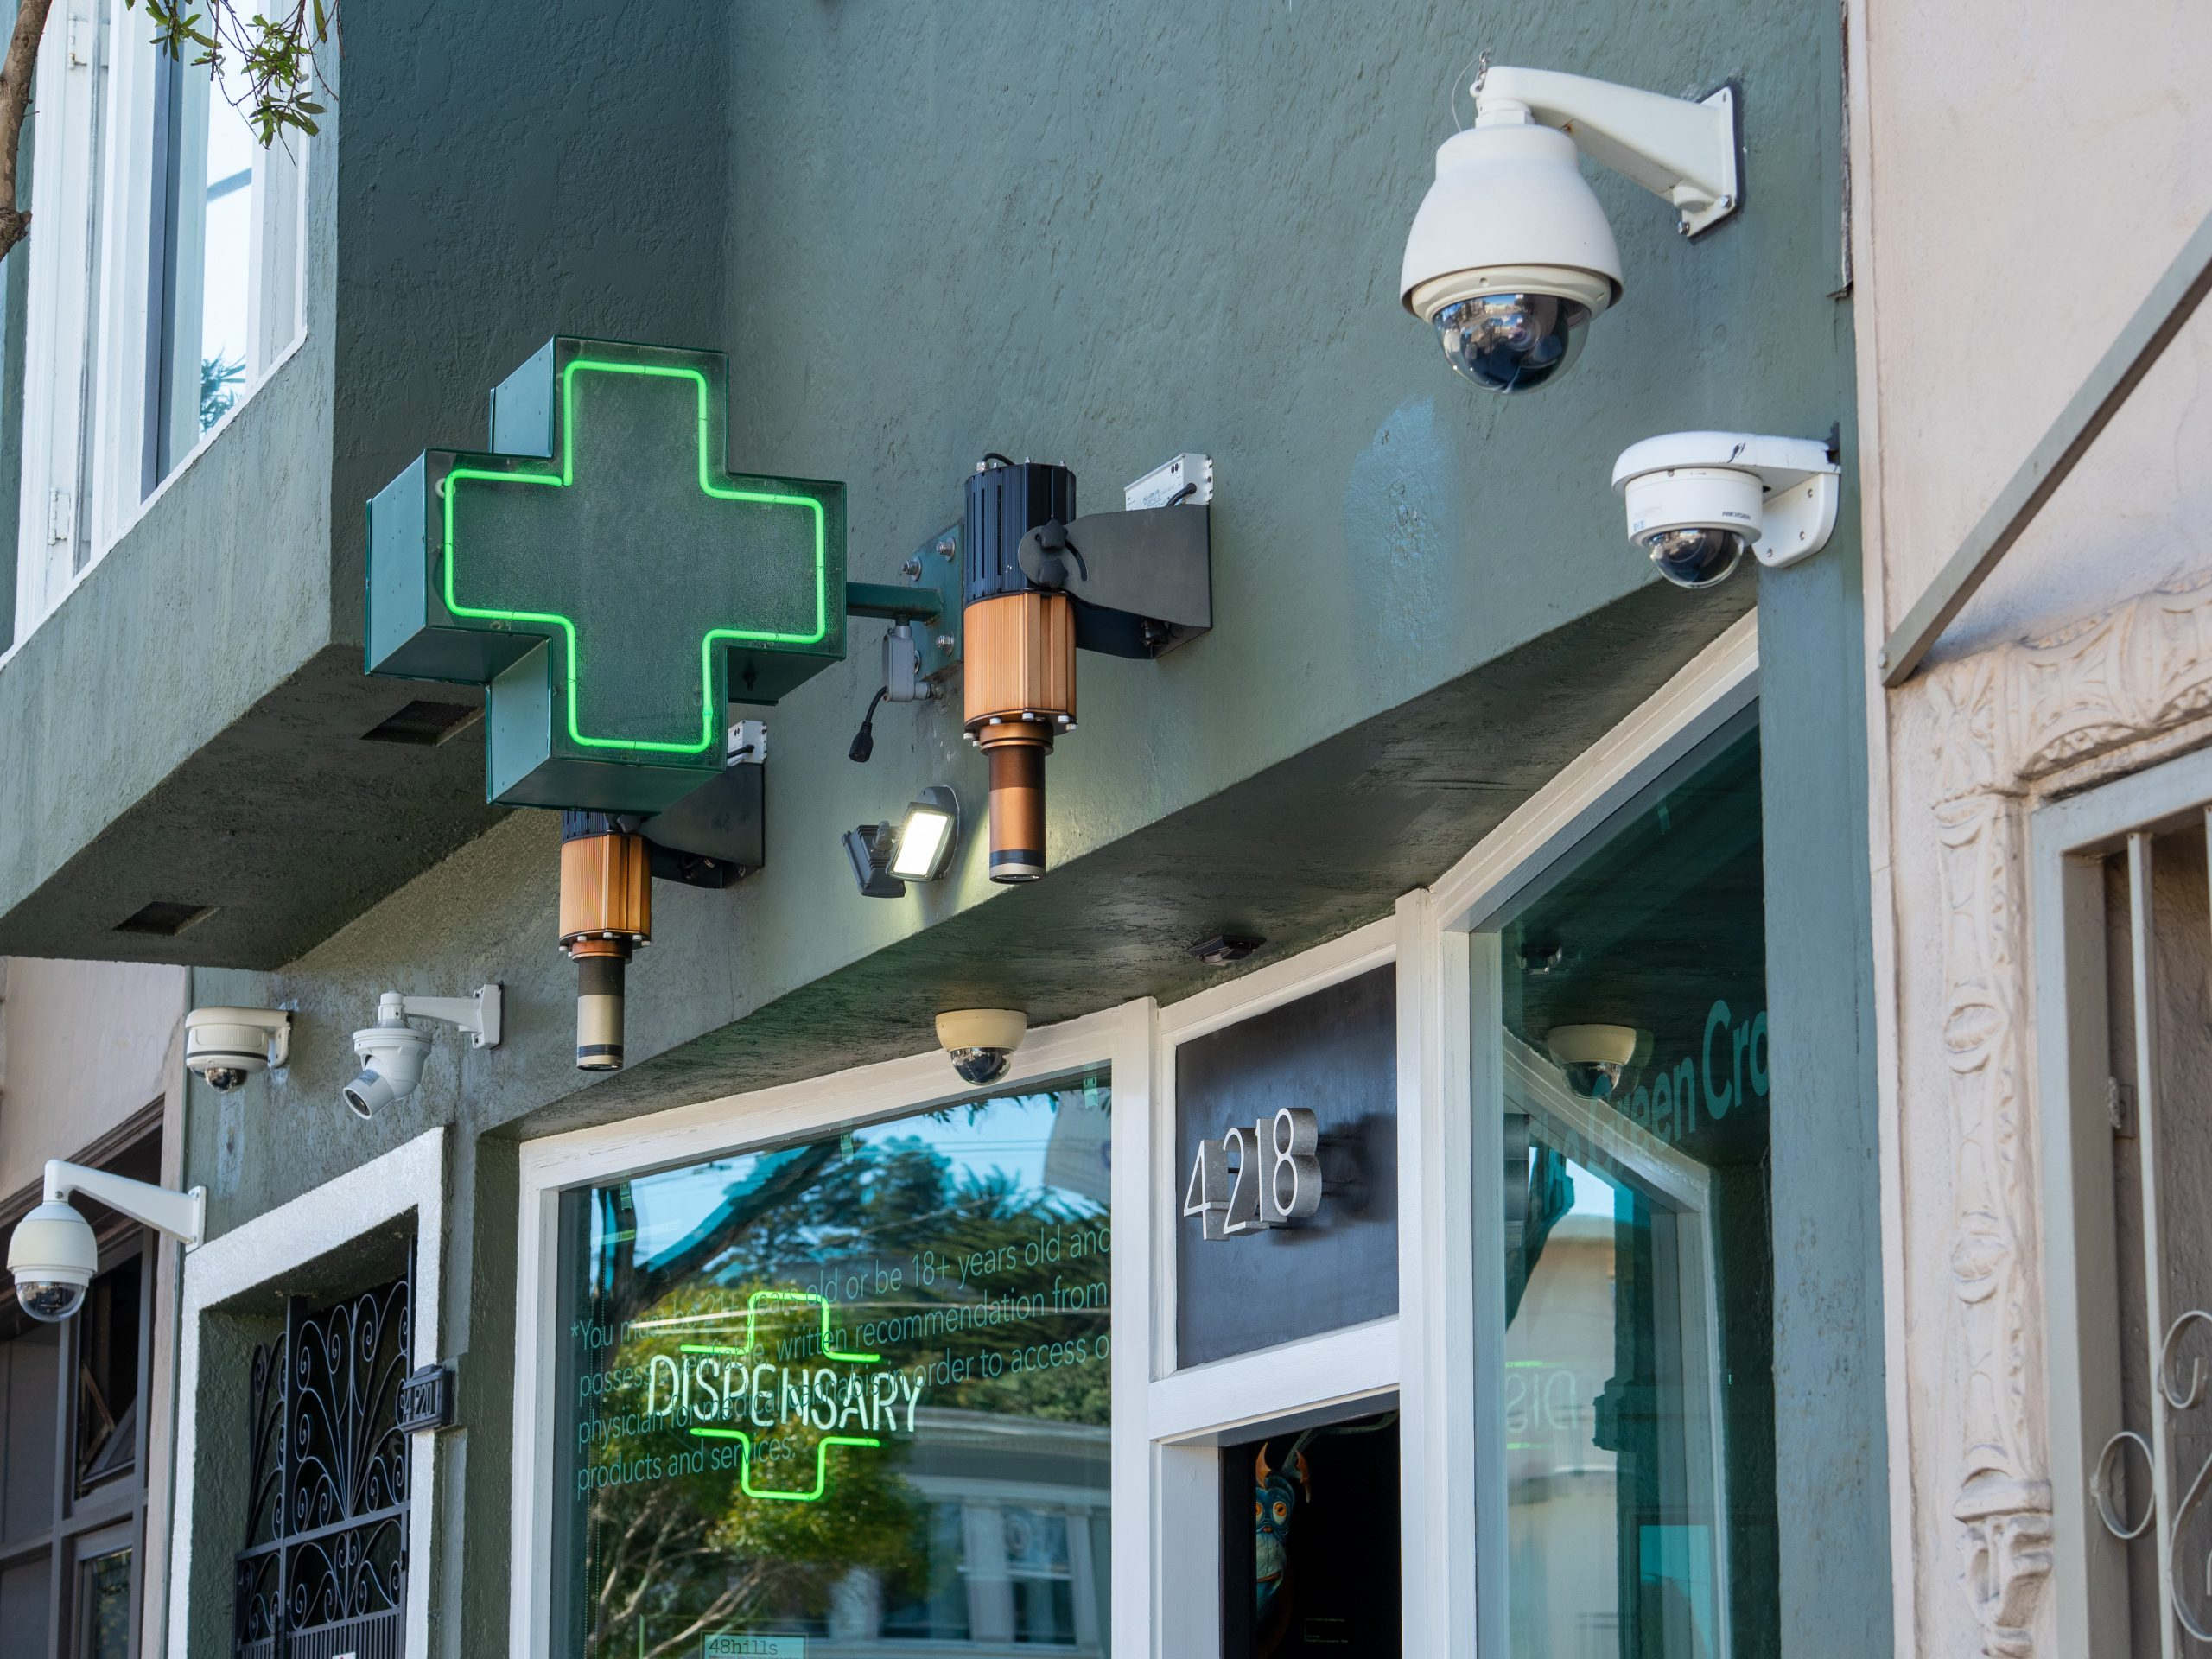 Higher Yields Consulting Owning a Dispensary May Be Your Gateway Into the Cannabis Industry